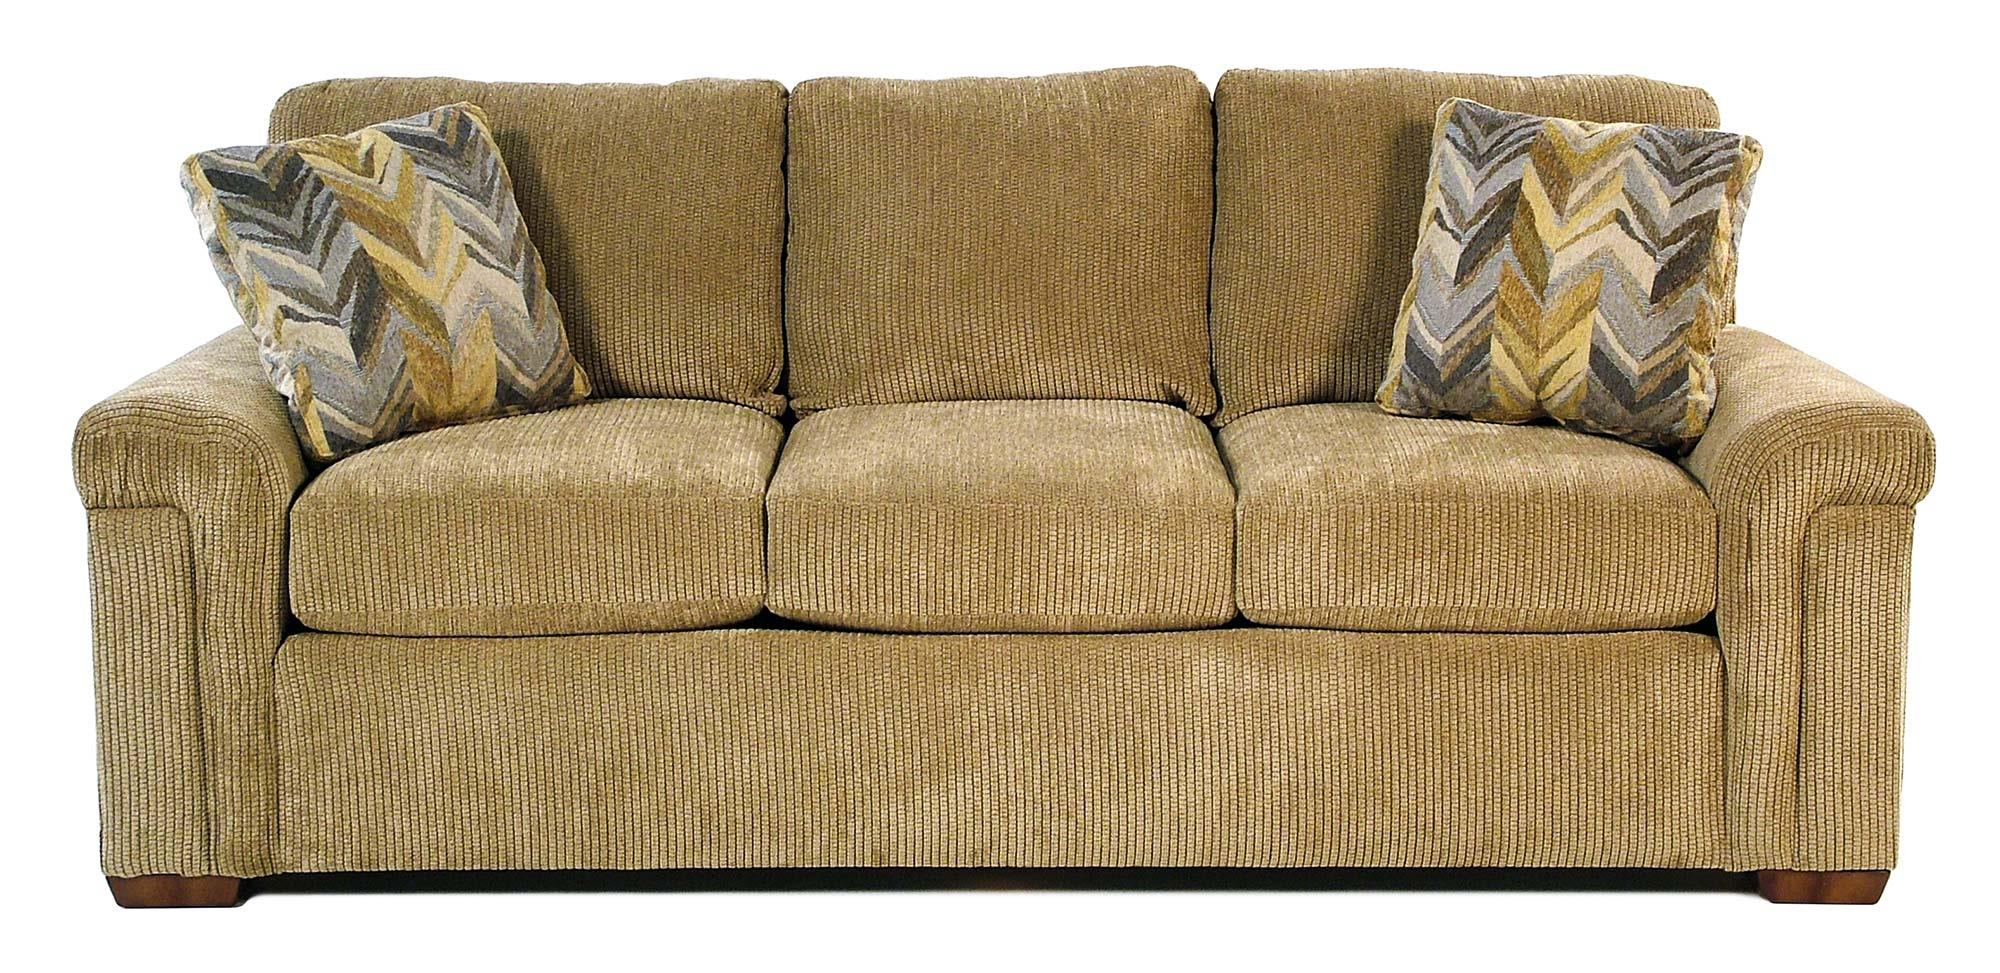 Flexsteel Riverton Casual Sofa with Pillow Arms - Item Number: S5649-31-911-80